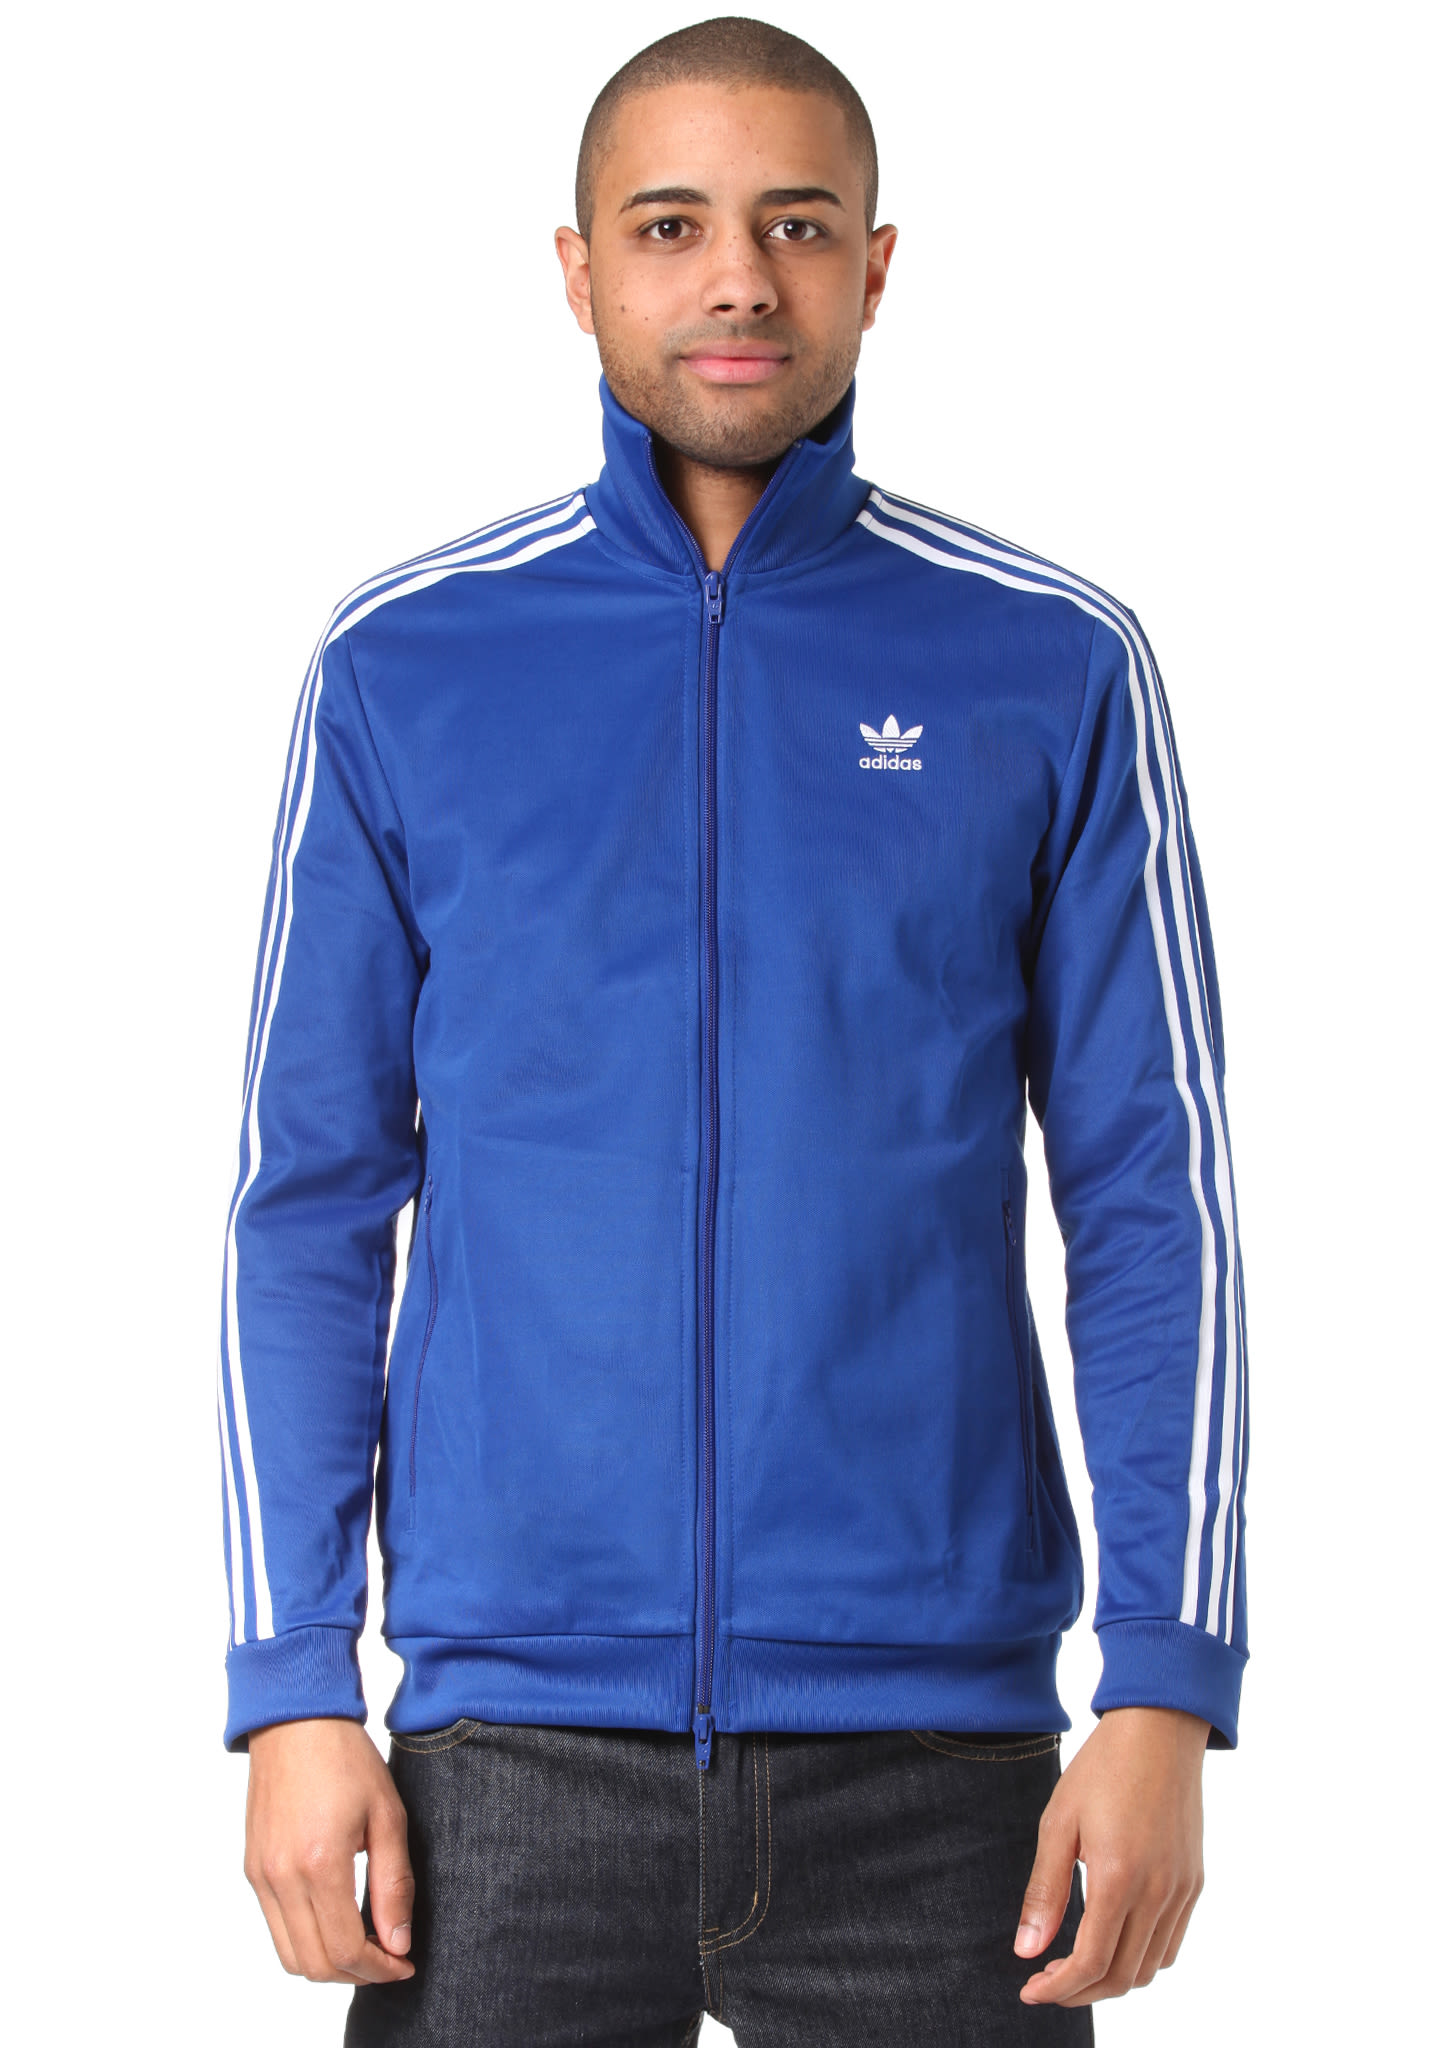 4ccf64341d8 ADIDAS ORIGINALS Beckenbauer - Track Top for Men - Blue - Planet Sports